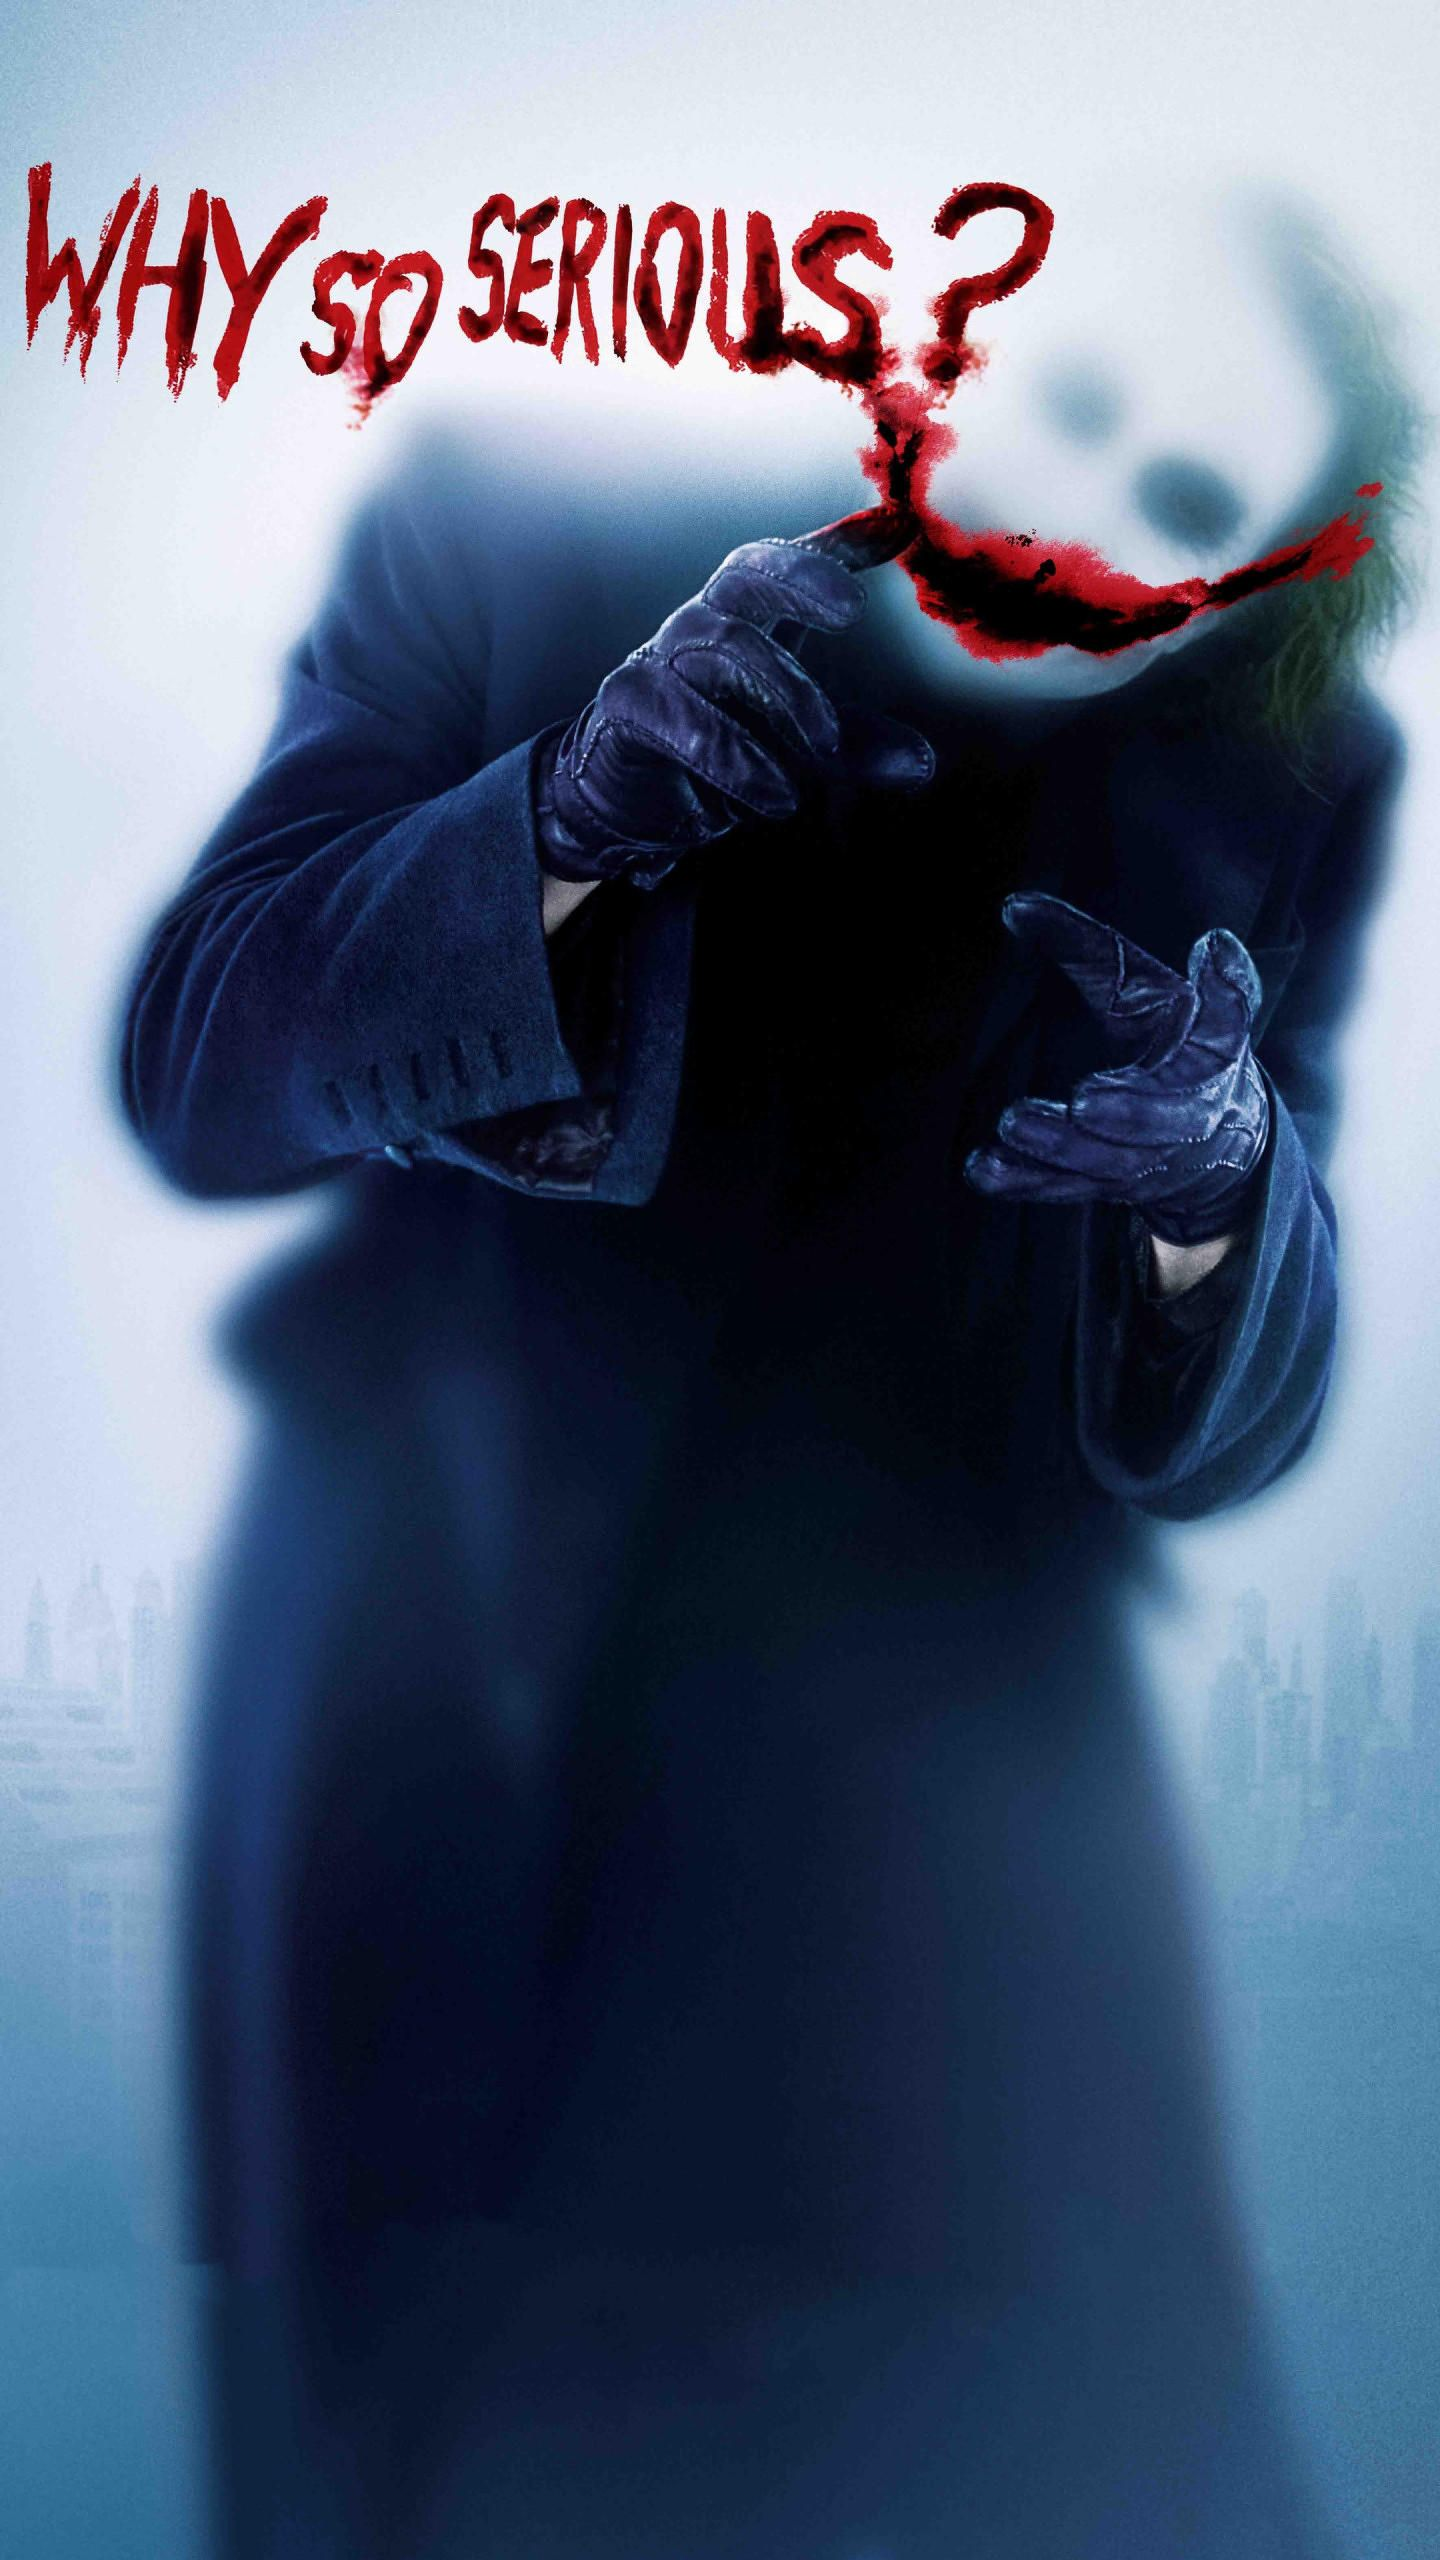 Joker Why So Serious Hd Wallpaper In 2020 With Images Joker Iphone Wallpaper Cool Wallpapers Joker Joker Images Cool joker why so serious wallpaper hd